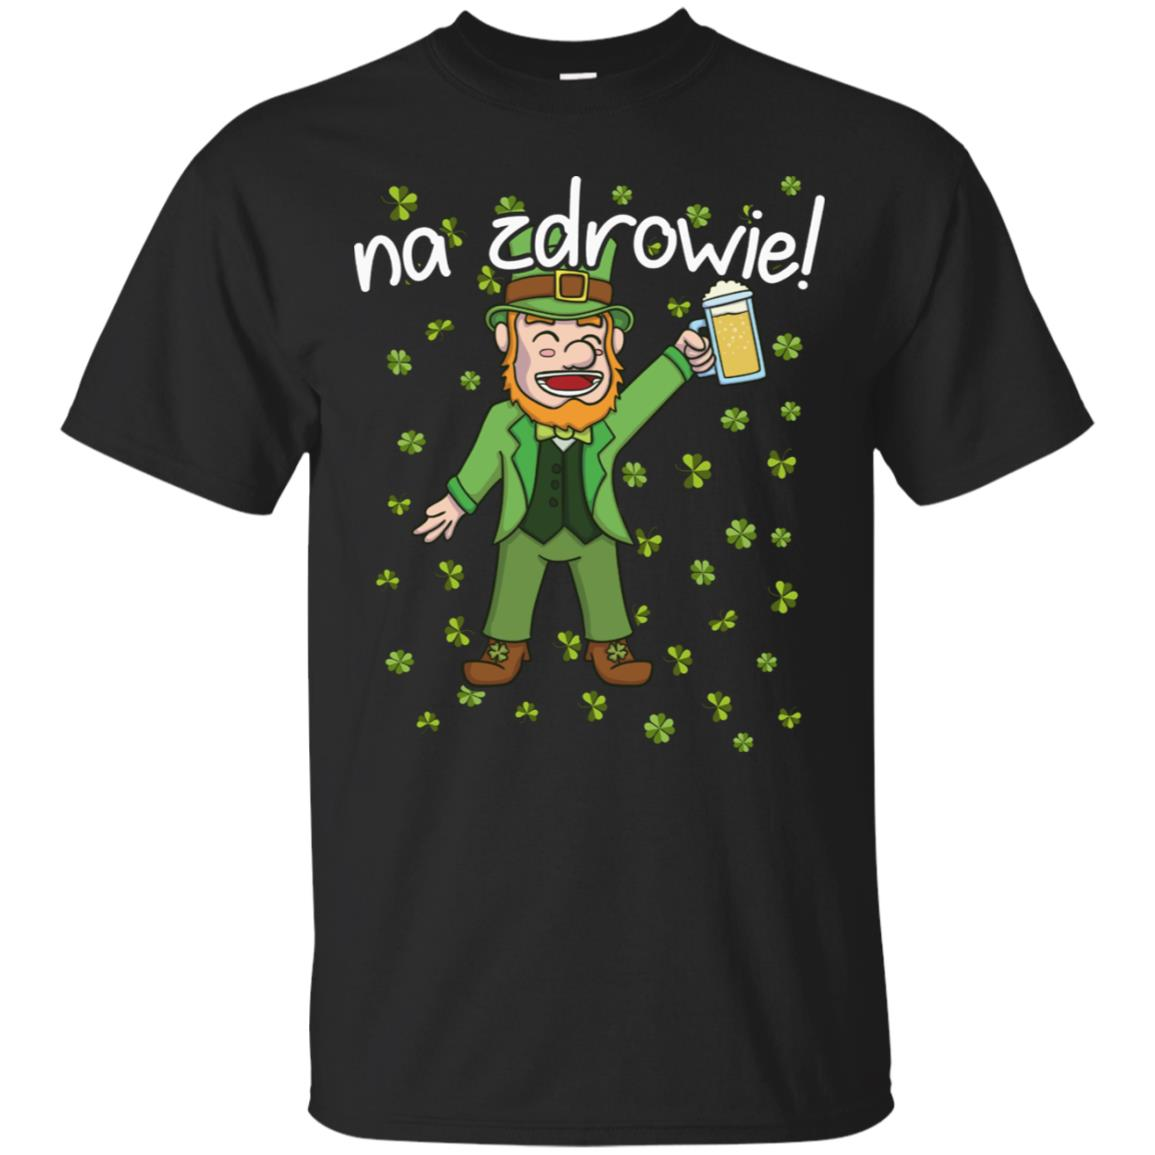 Na Zdrowie - Cheers in Polish St. Patricks Day T-Shirt 99promocode